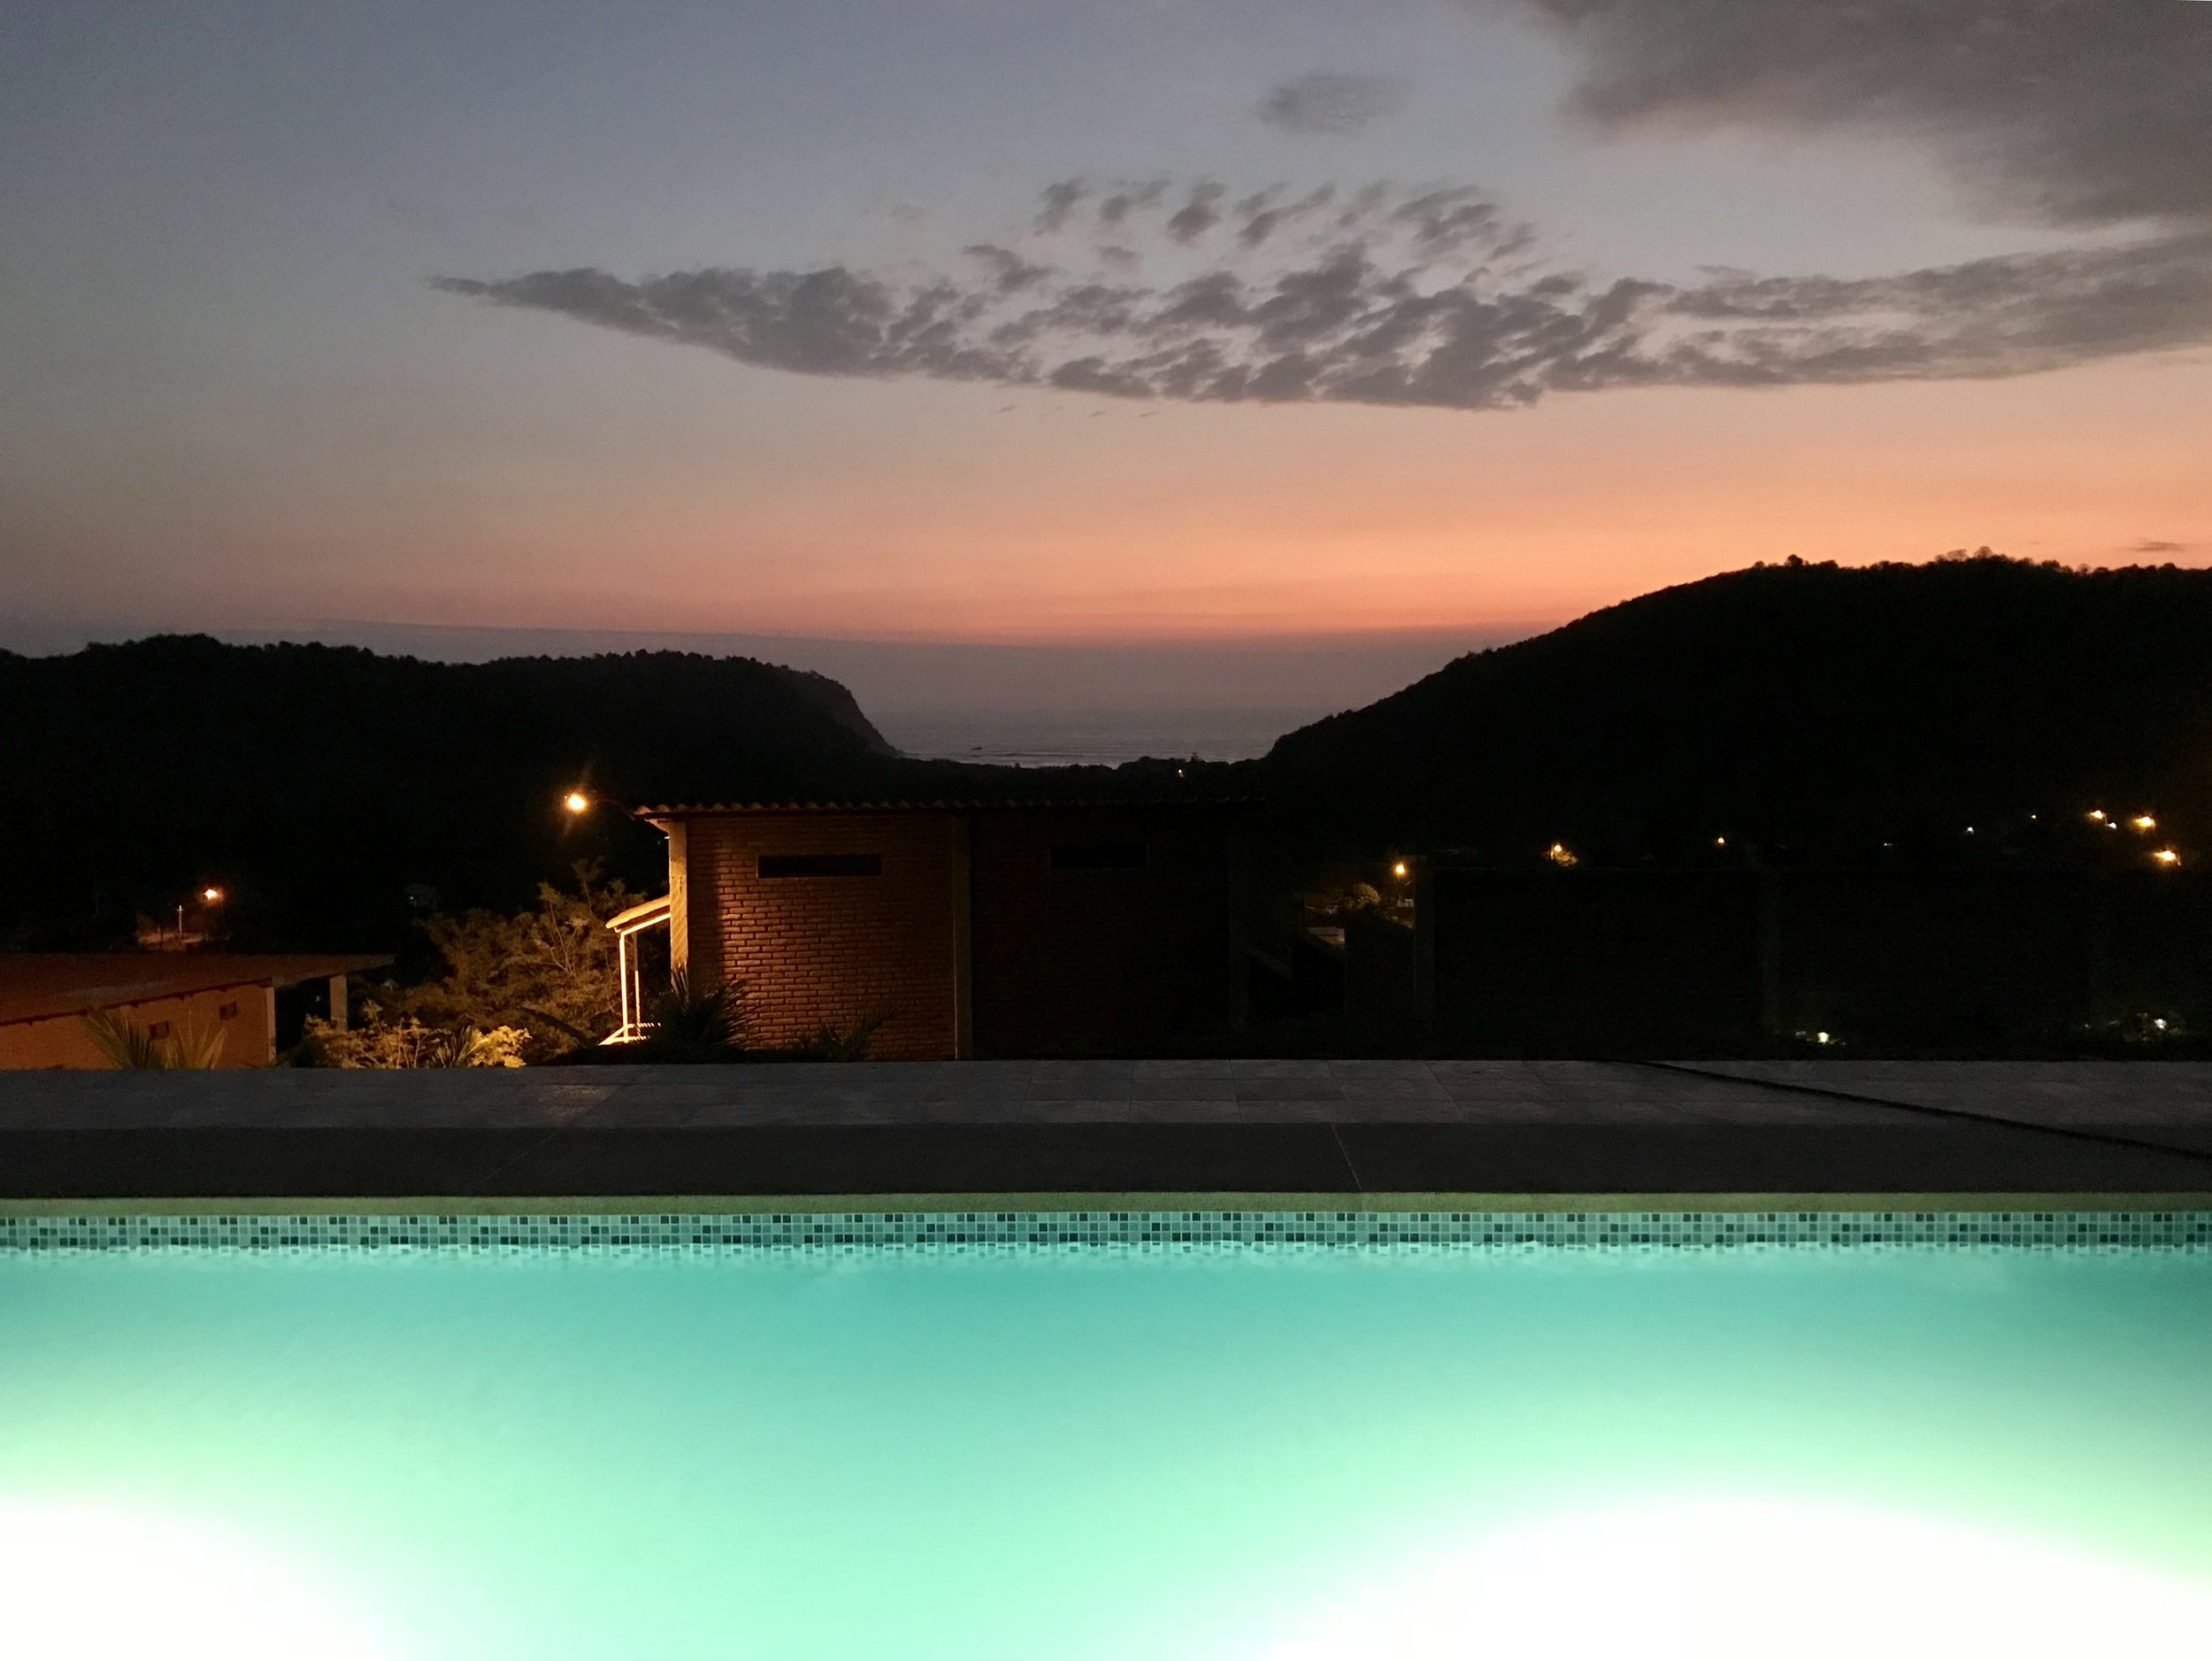 UPPER TERRACE POOLSIDE AT SUNSET